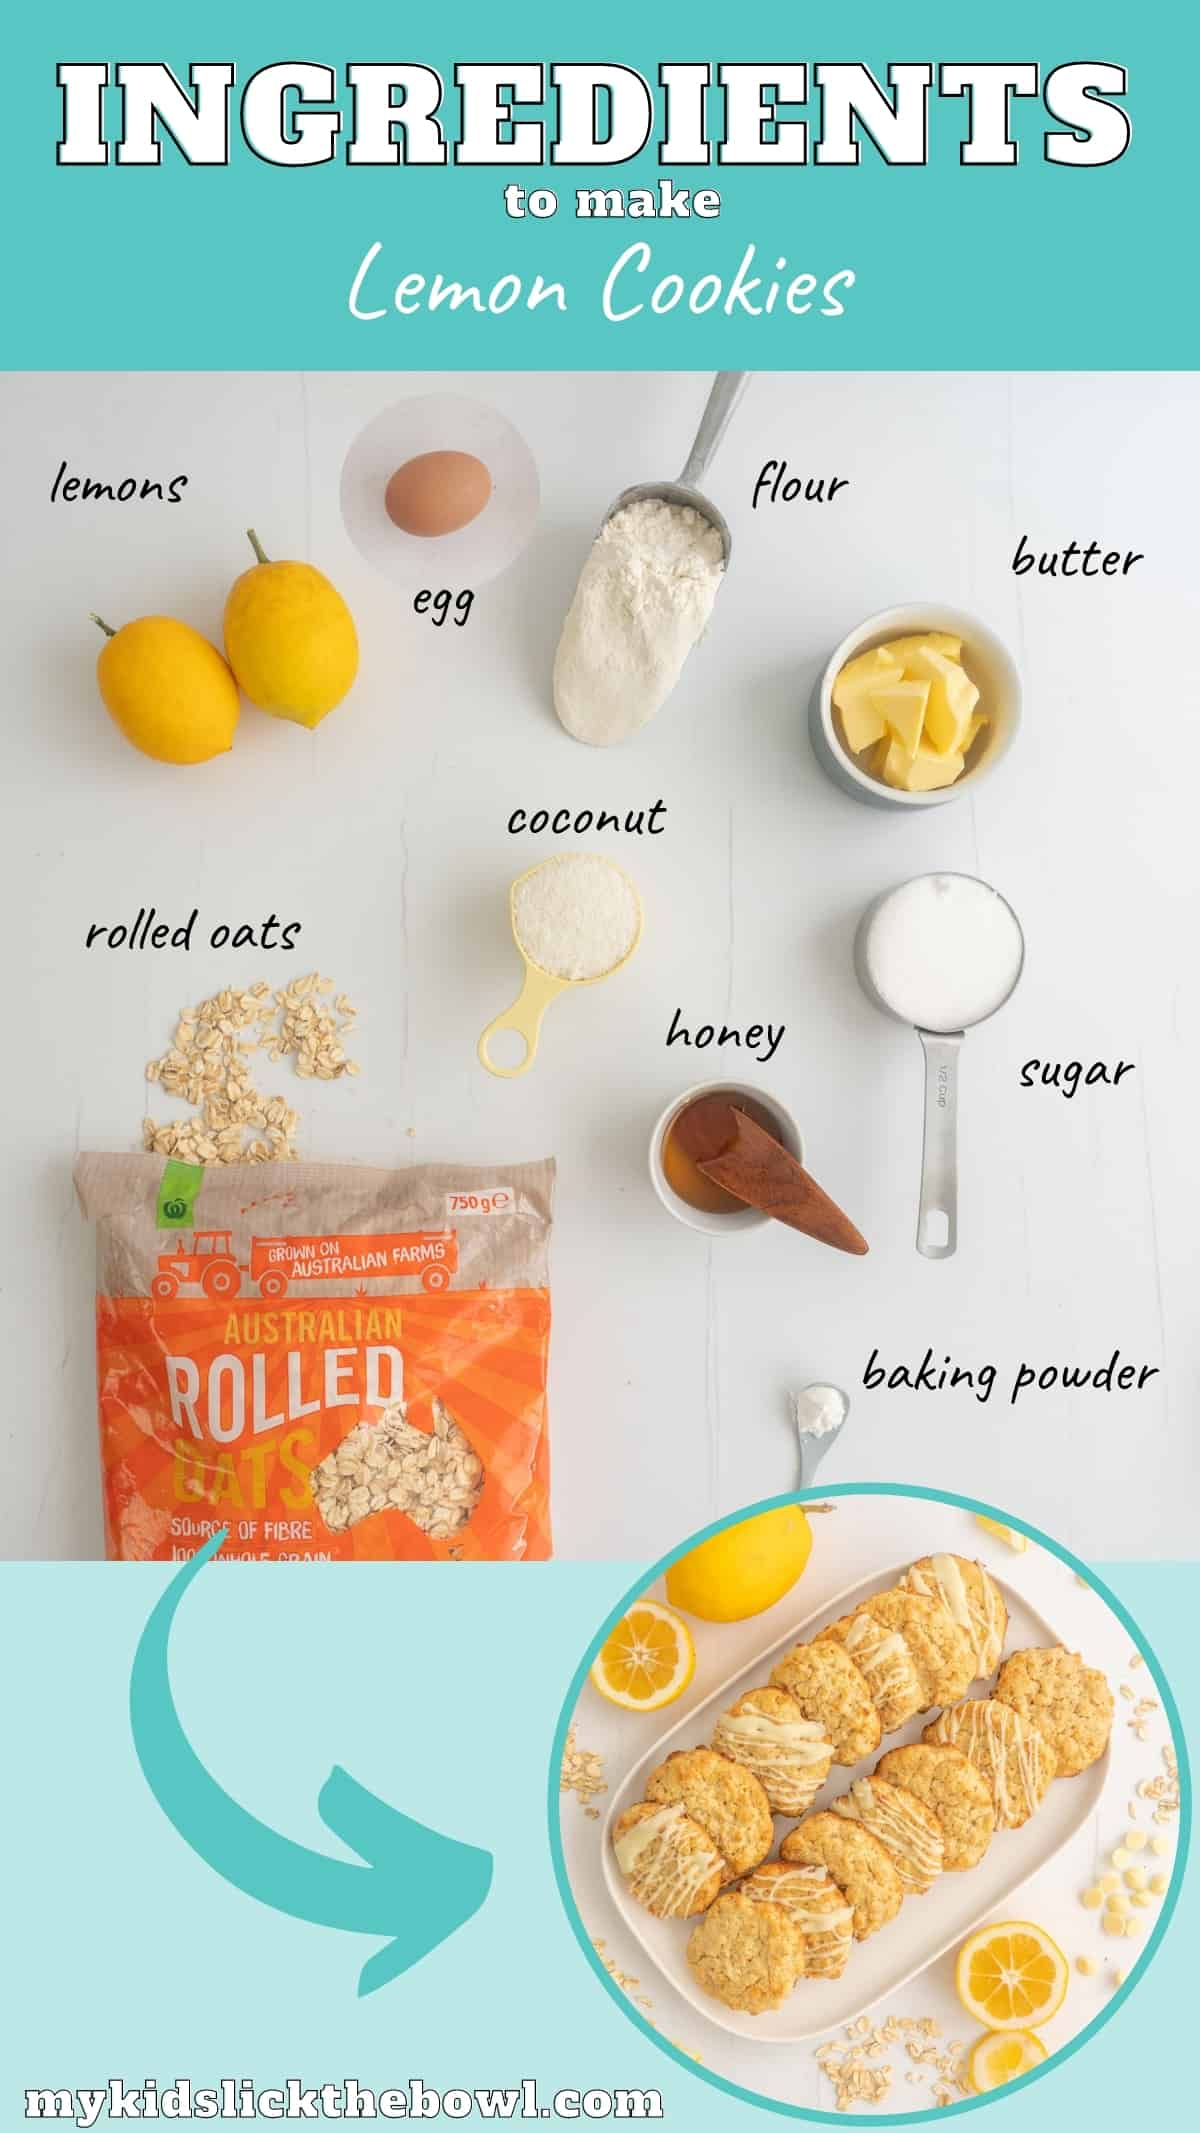 The ingredients to make lemon cookies laid out on a counter top with text overlay.